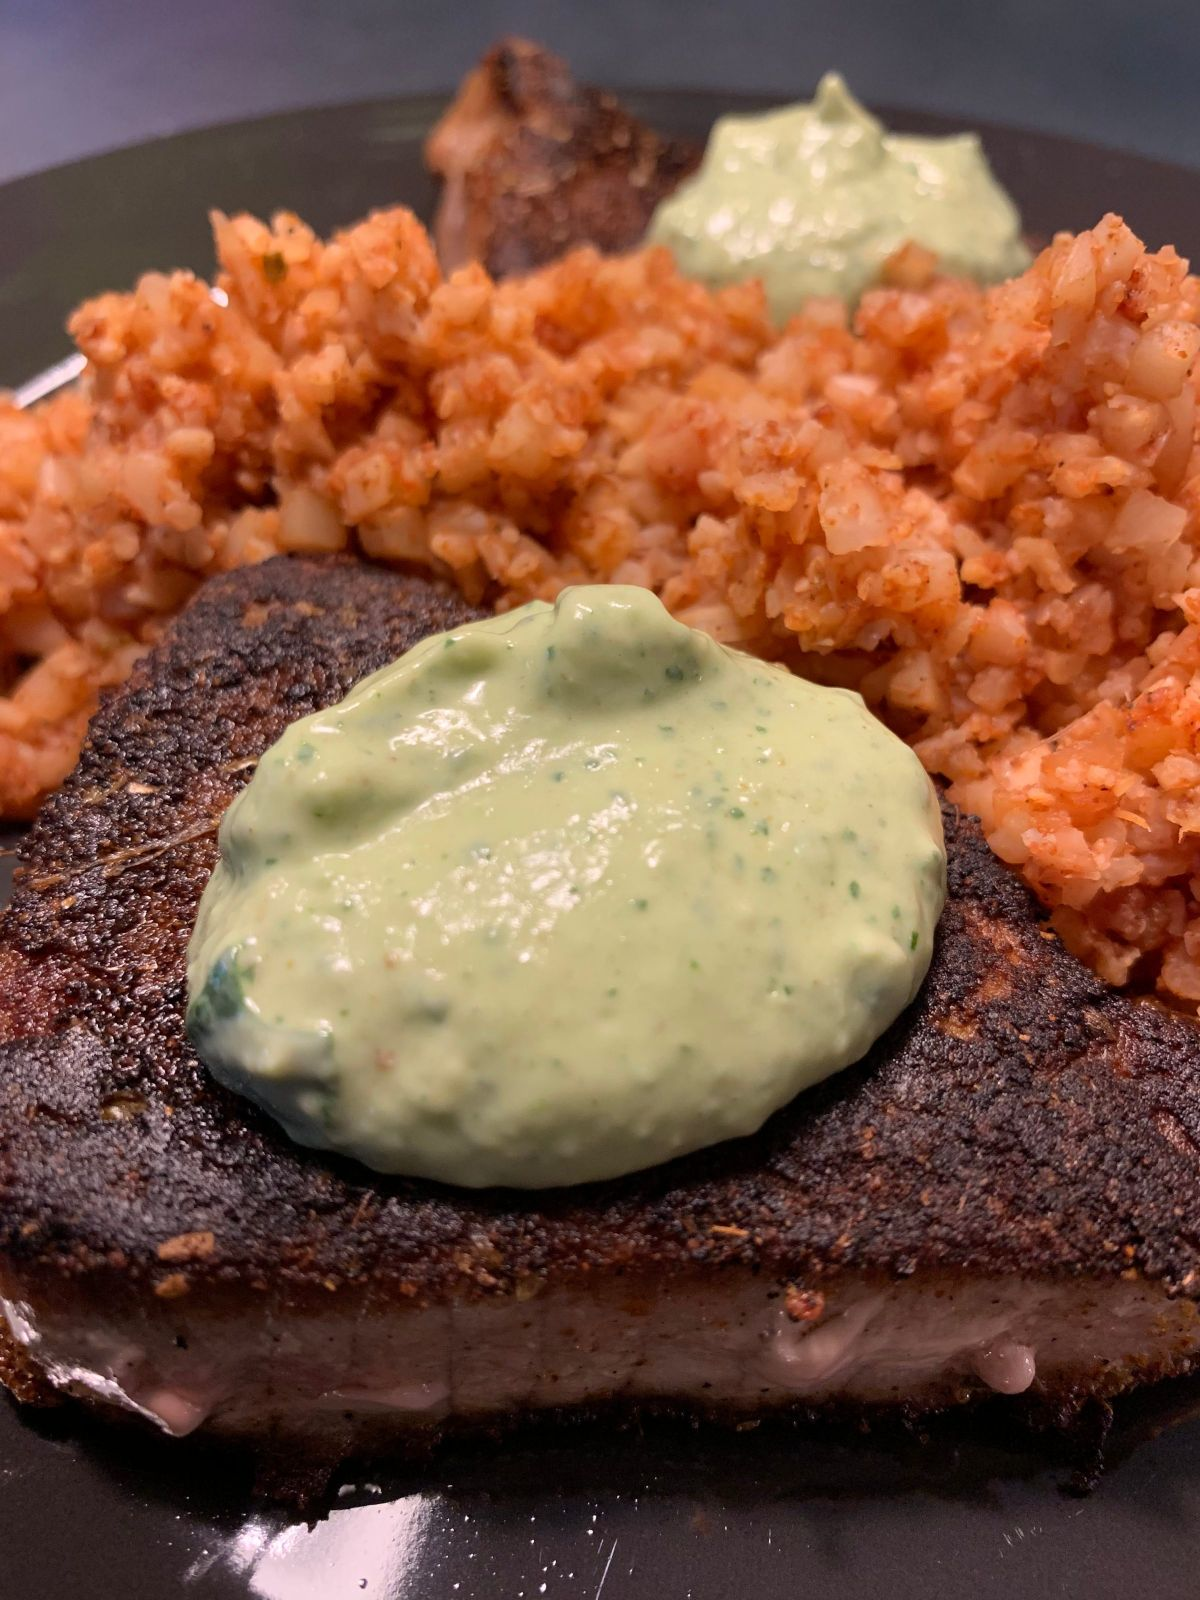 A partial shot of a dark gray plate with tomato cauliflower rice, seared tuna and a creamy sauce on top